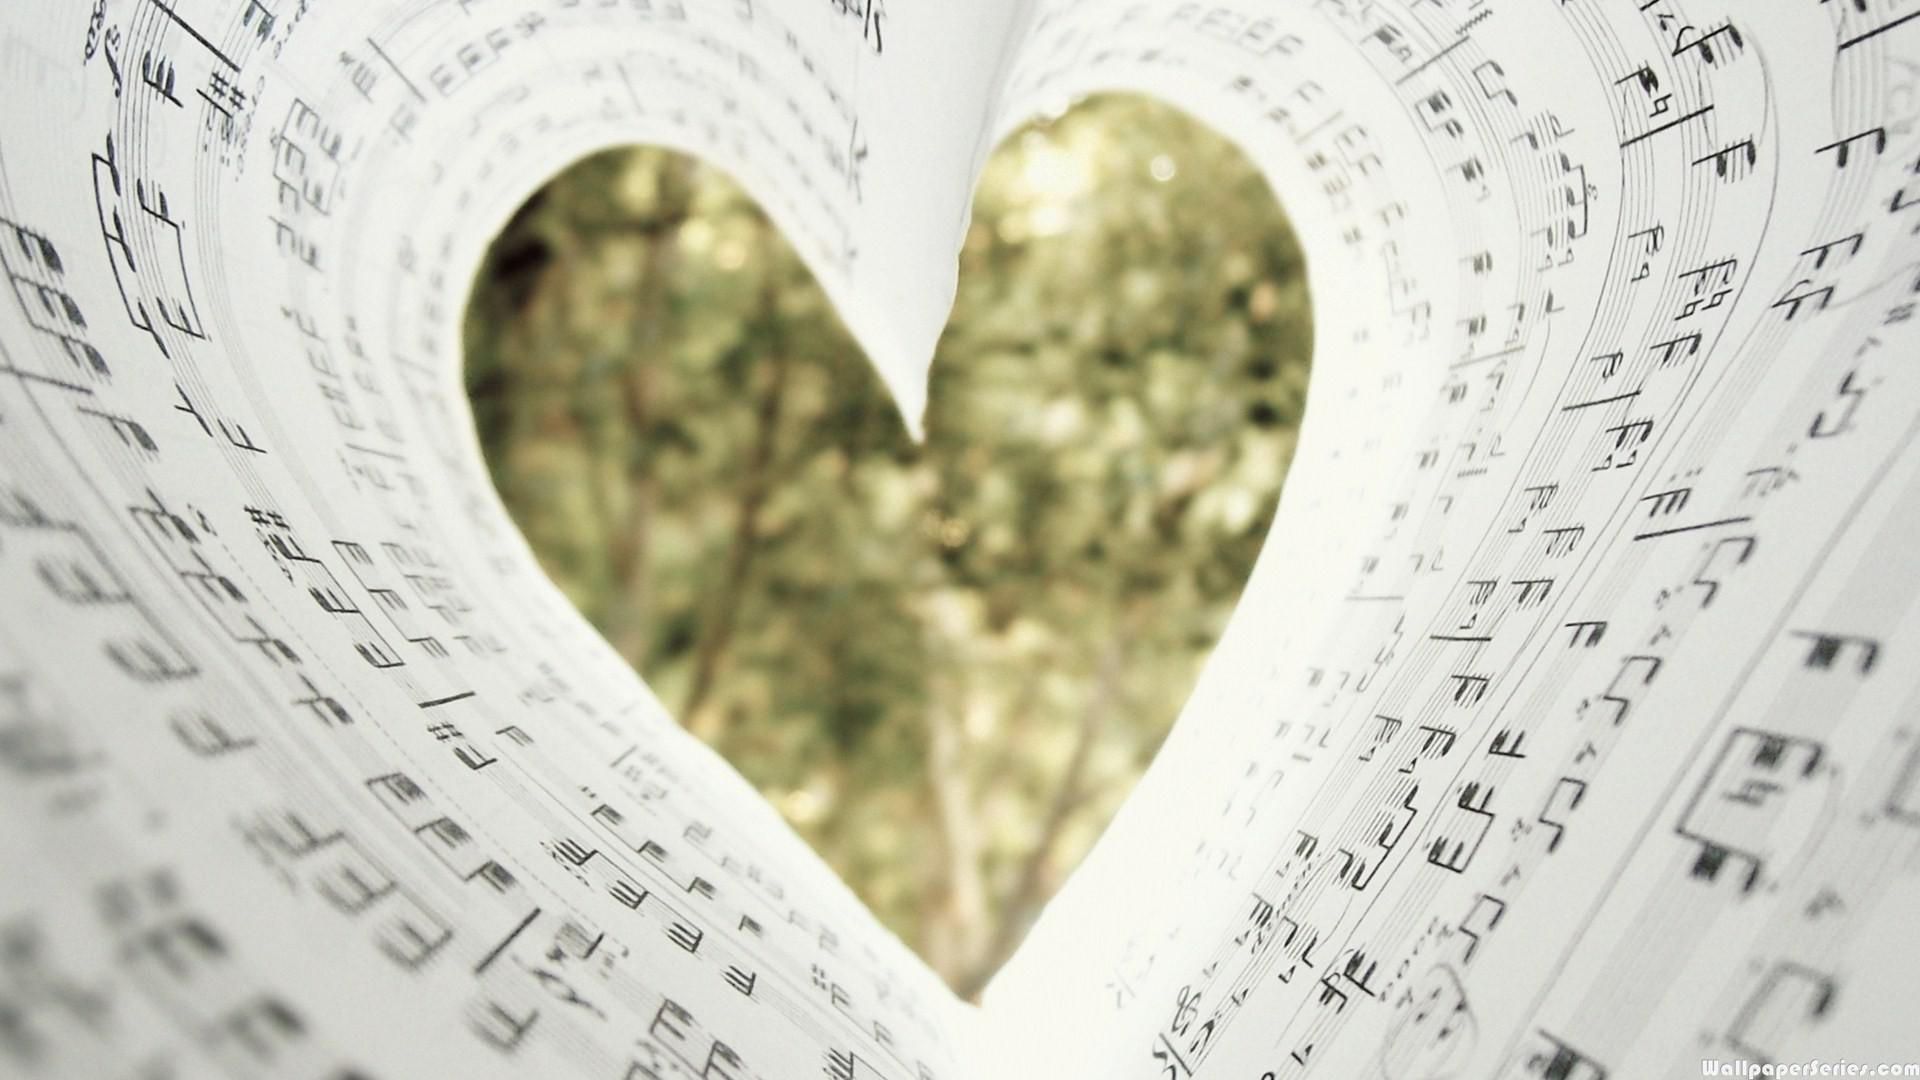 Animated Heart Wallpaper Hd Music Notes Heart Book Wallpaper Download Free 139154